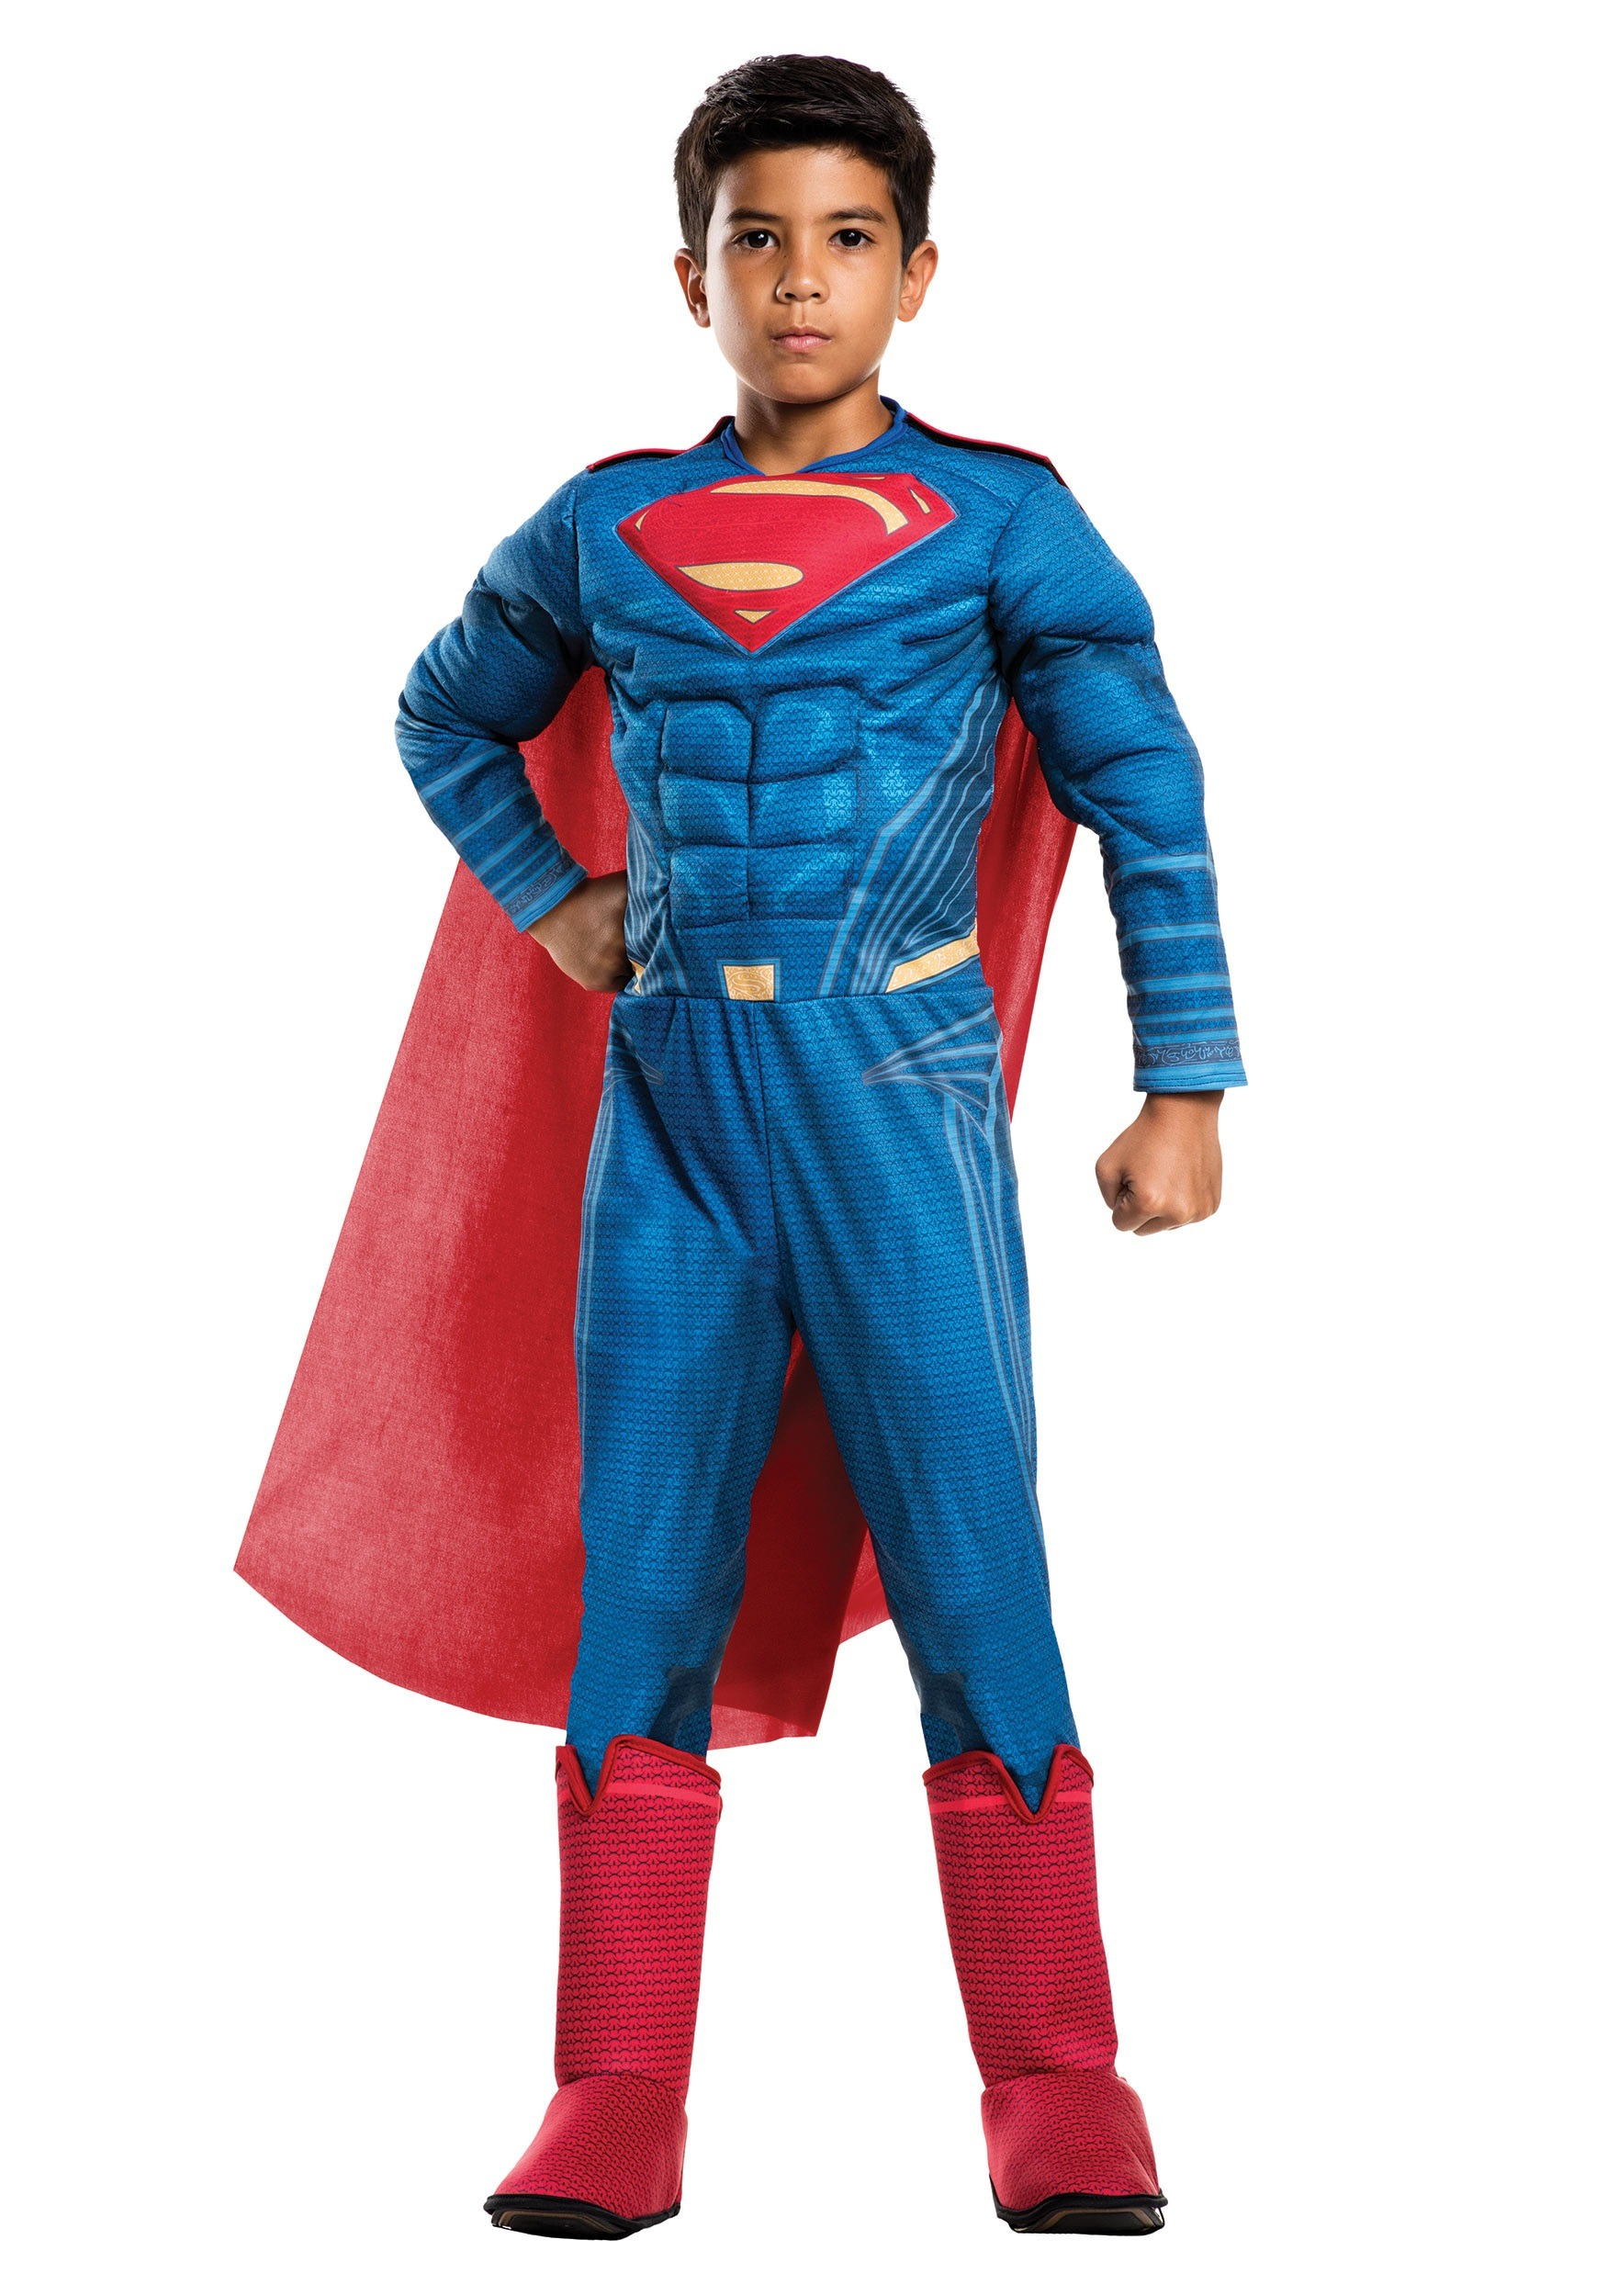 Deluxe Child Dawn of Justice Superman Costume  RU620568